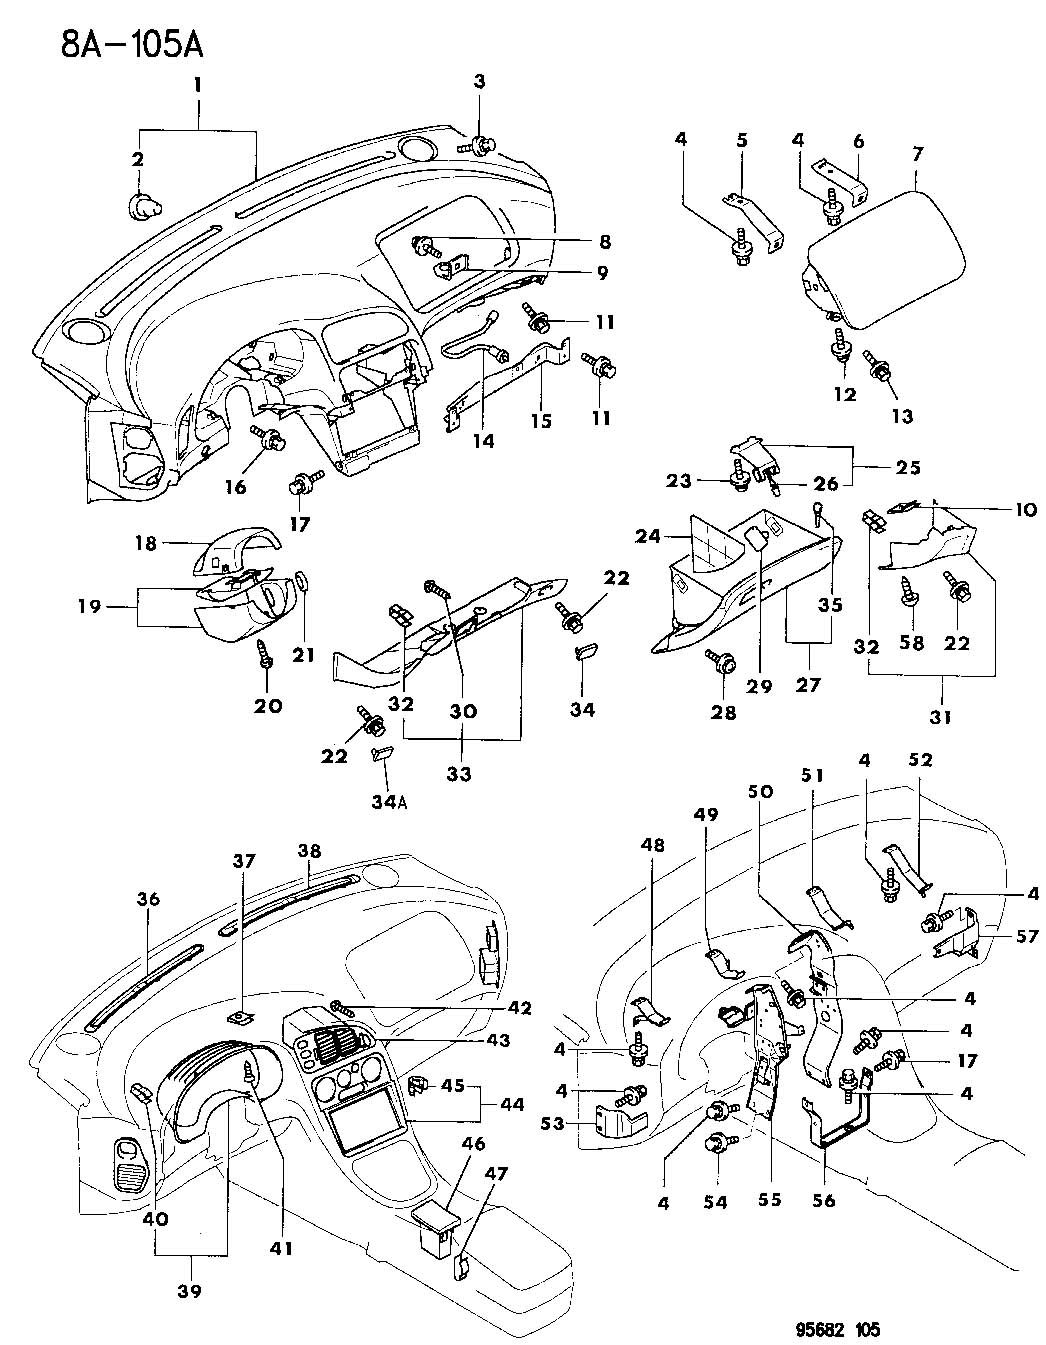 Chrysler Sebring Used For Screw And Washer Tapping